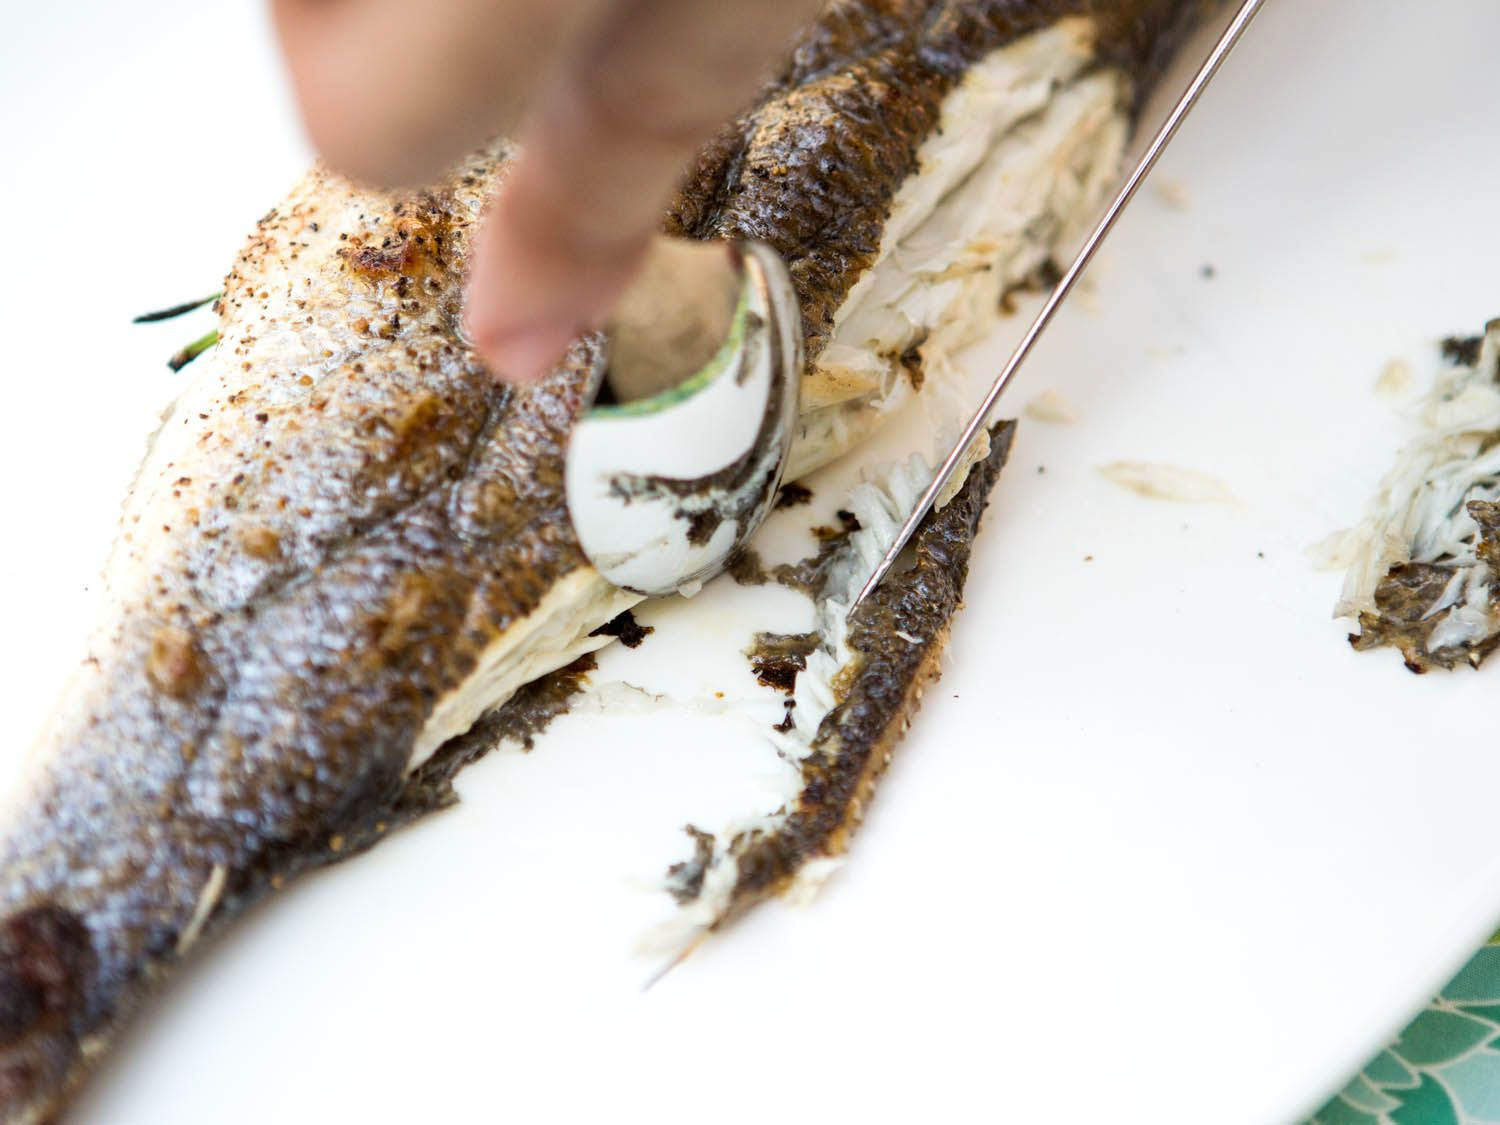 20140708-how-to-serve-whole-fish-vicky-wasik-3.jpg